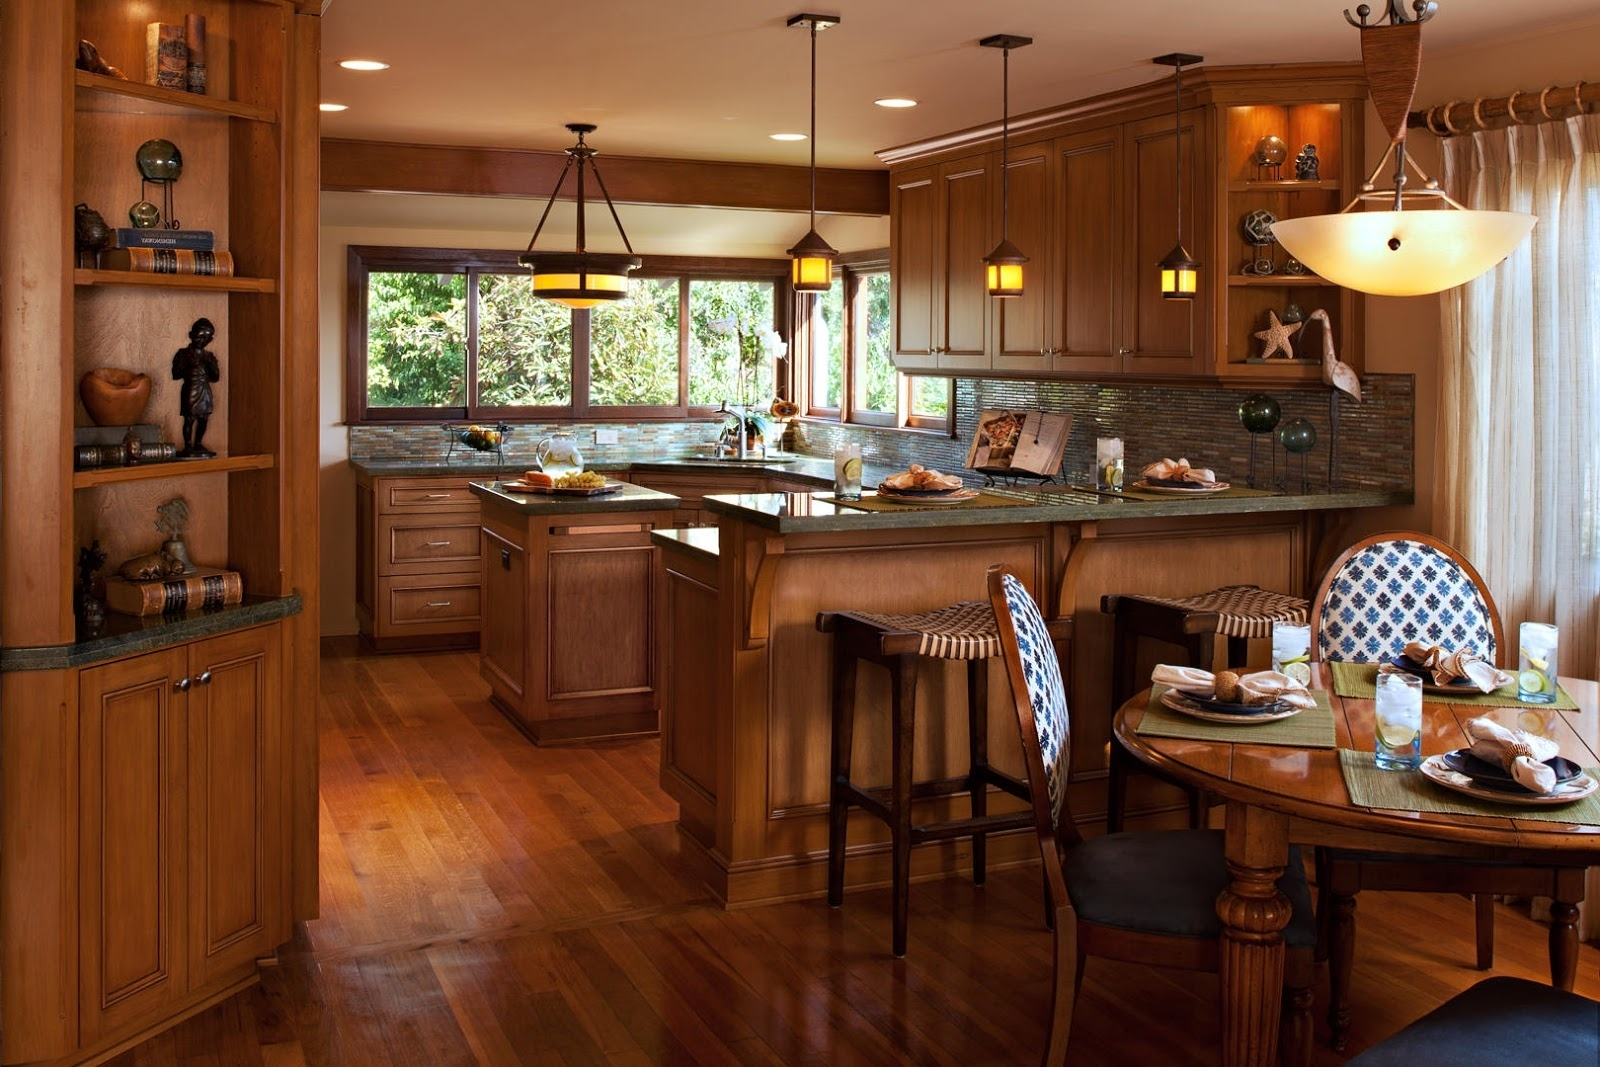 Popular Craftsman Round Dining Tables Within Home Priority: Astonishing Craftsman Style Interior Design Ideas For (View 19 of 25)